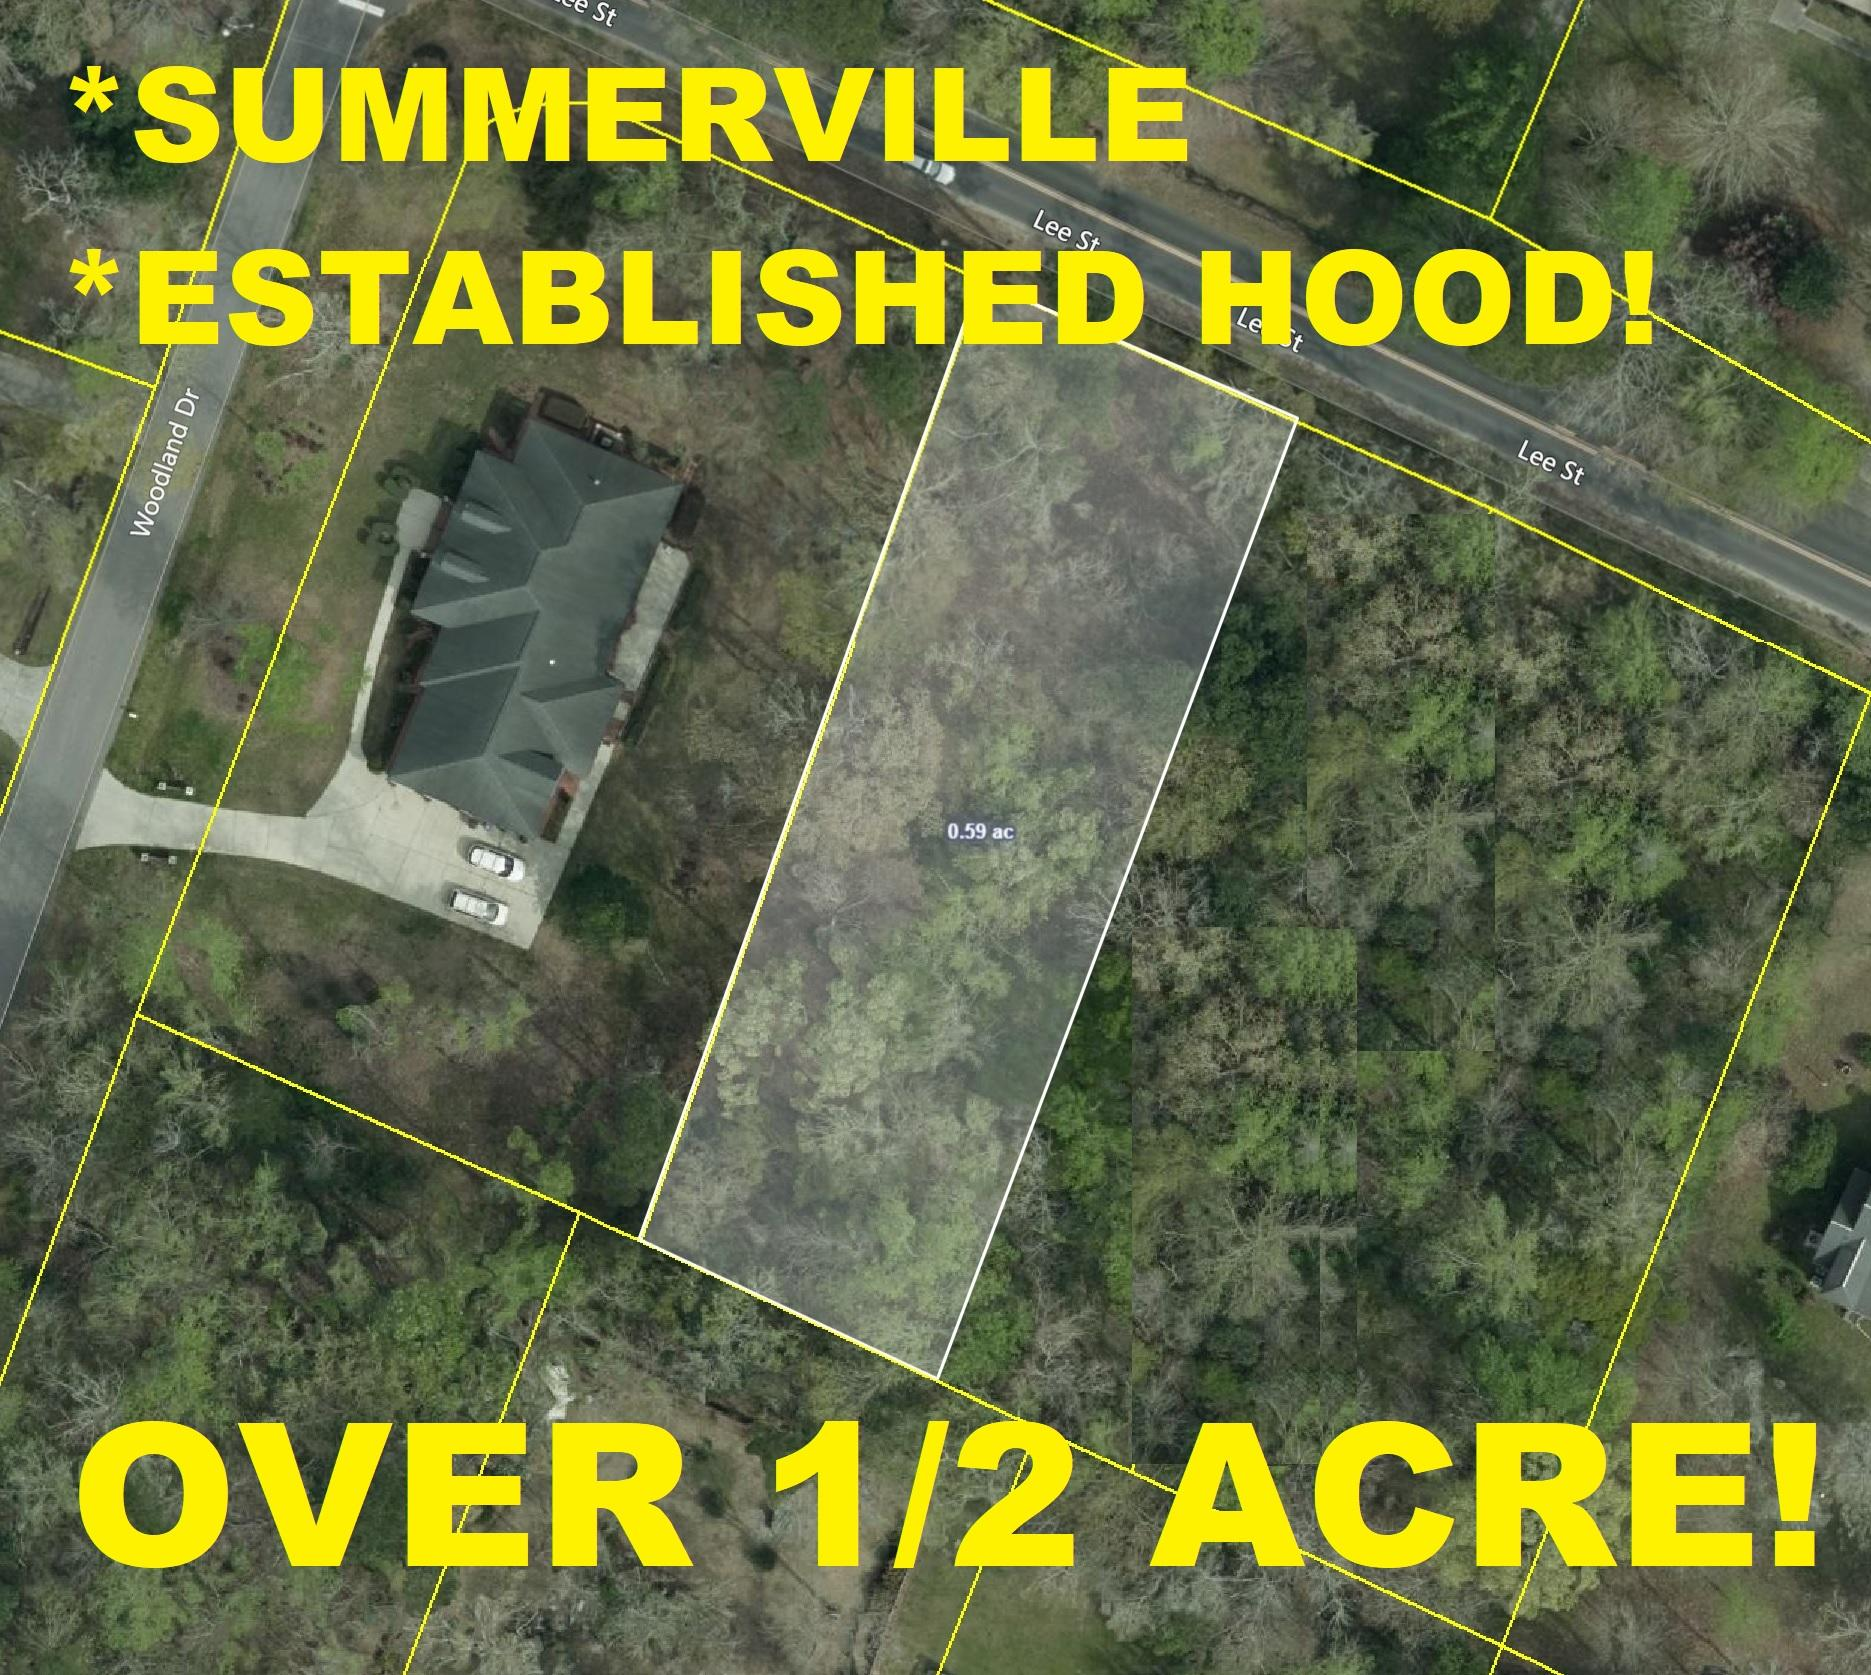 123 Lee Street Summerville, SC 29485